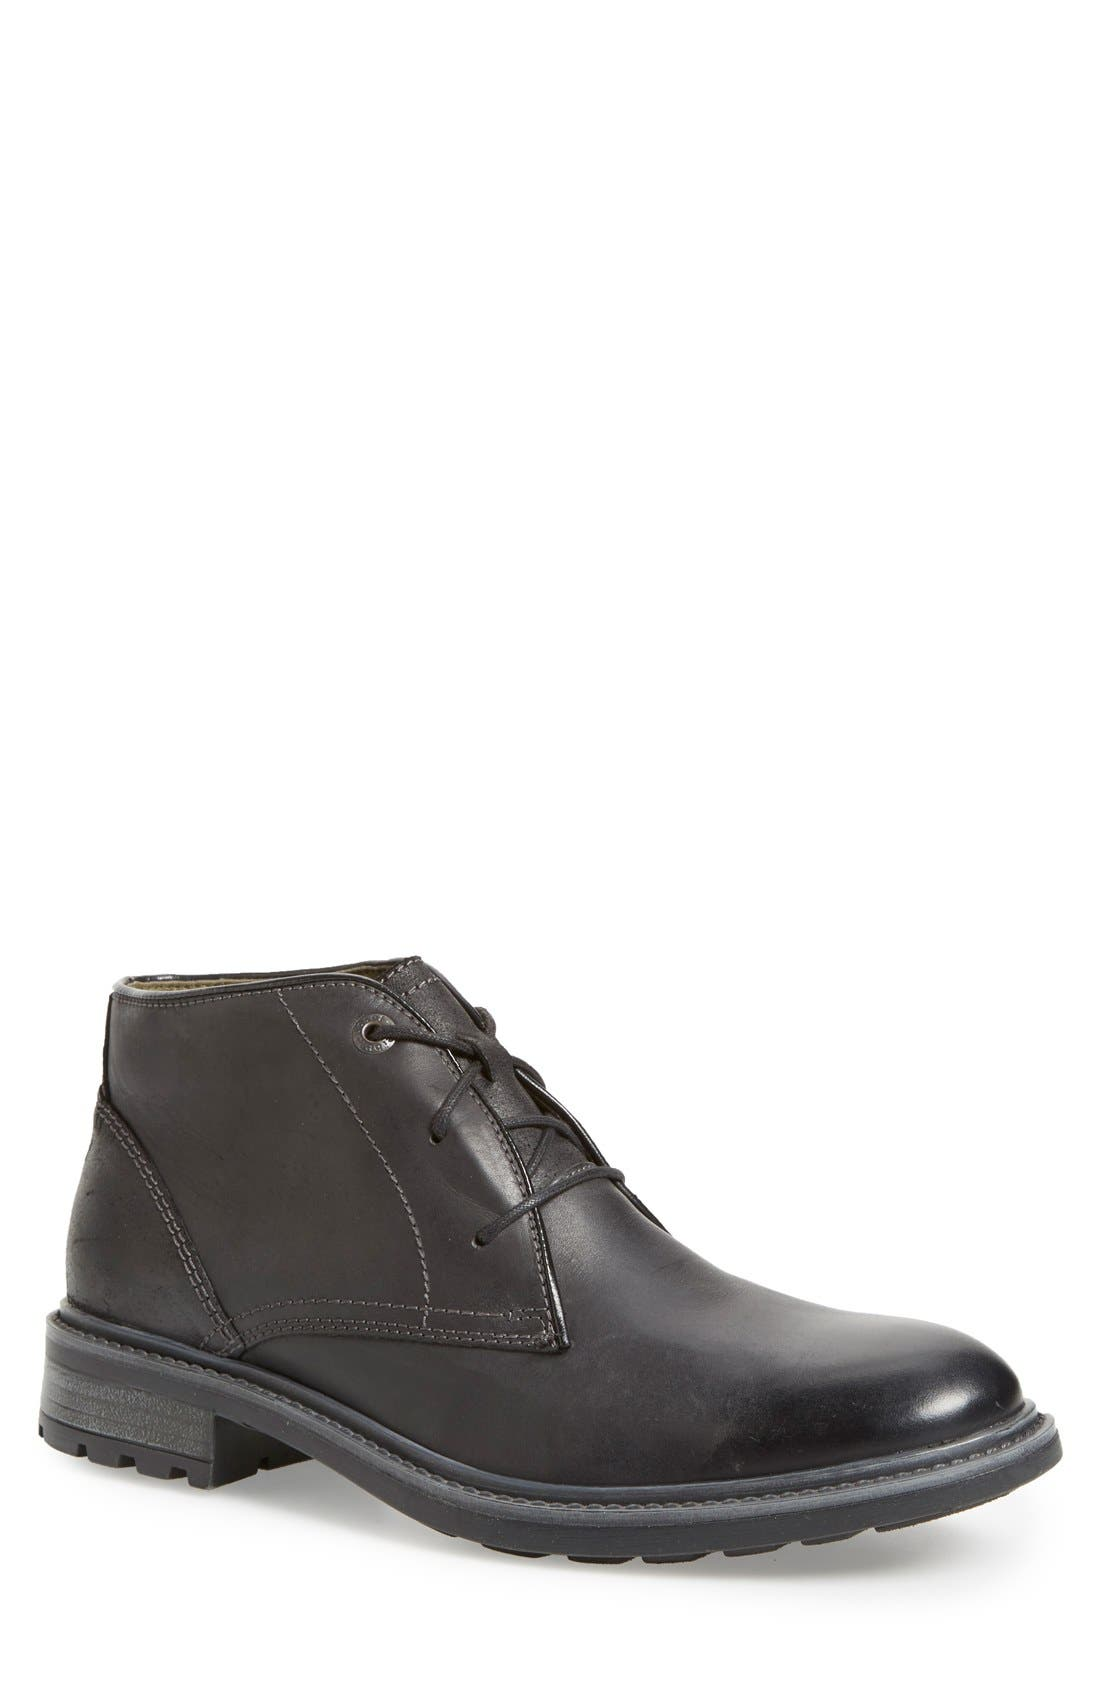 'Oscar 11' Chukka Boot,                         Main,                         color, BLACK